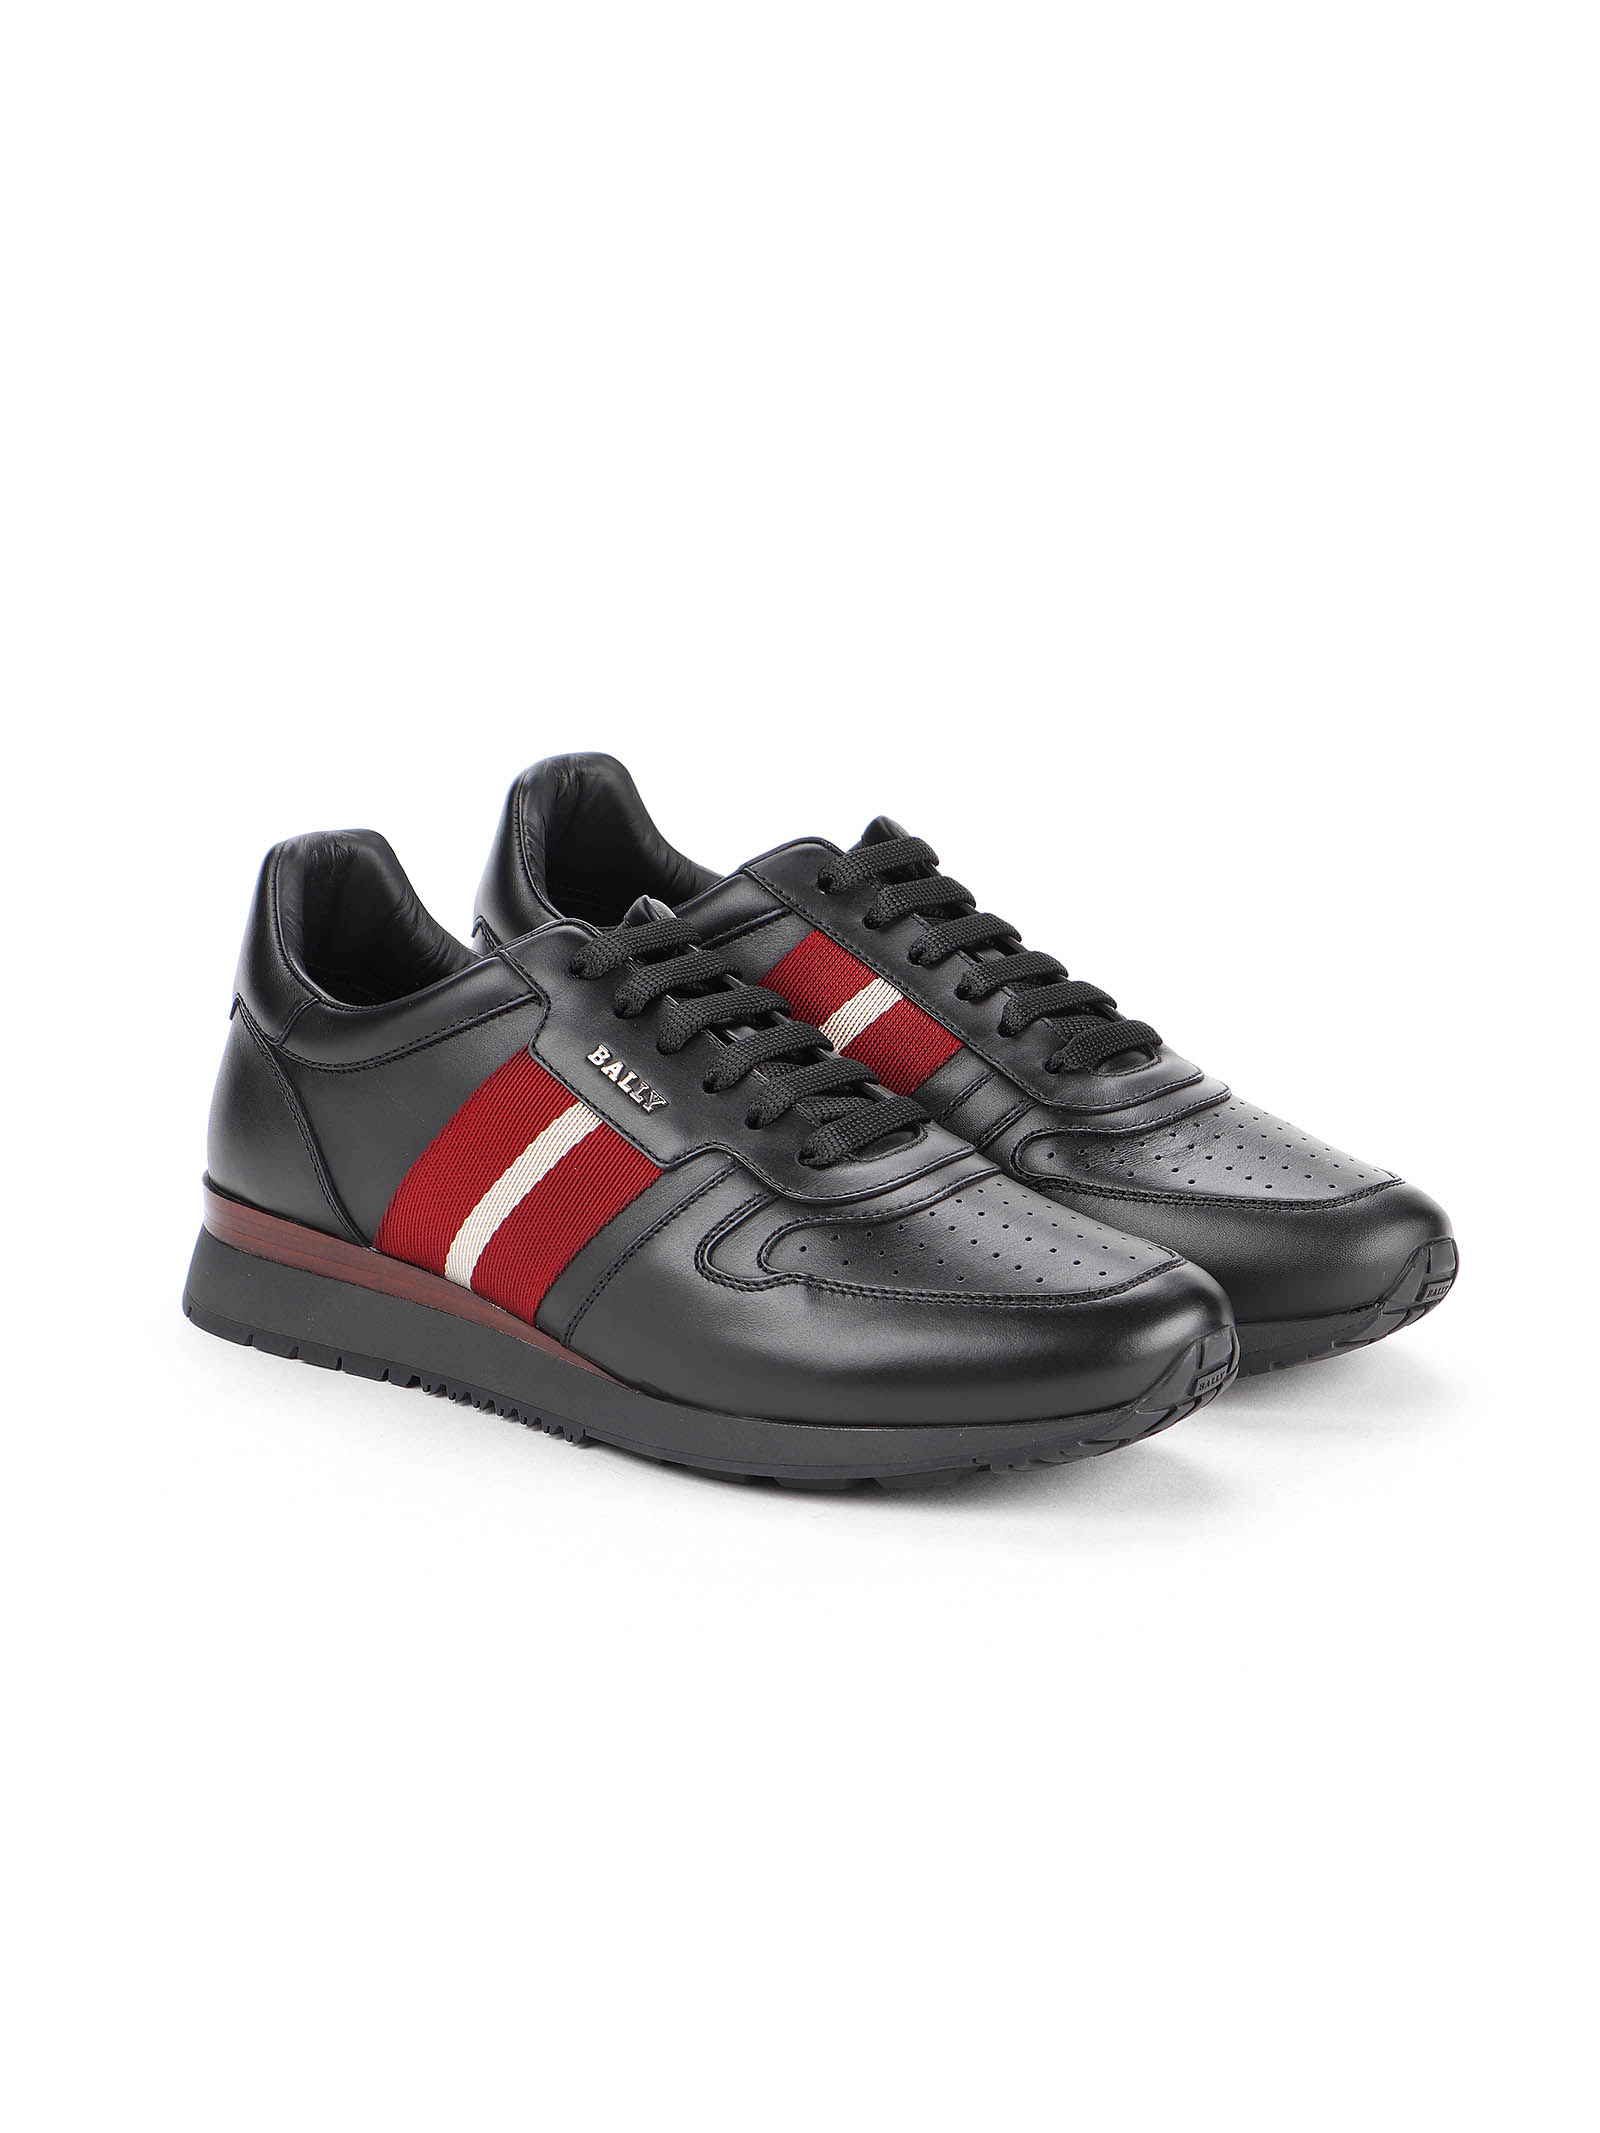 Picture of Bally | Astel-Fo/510 Sneaker